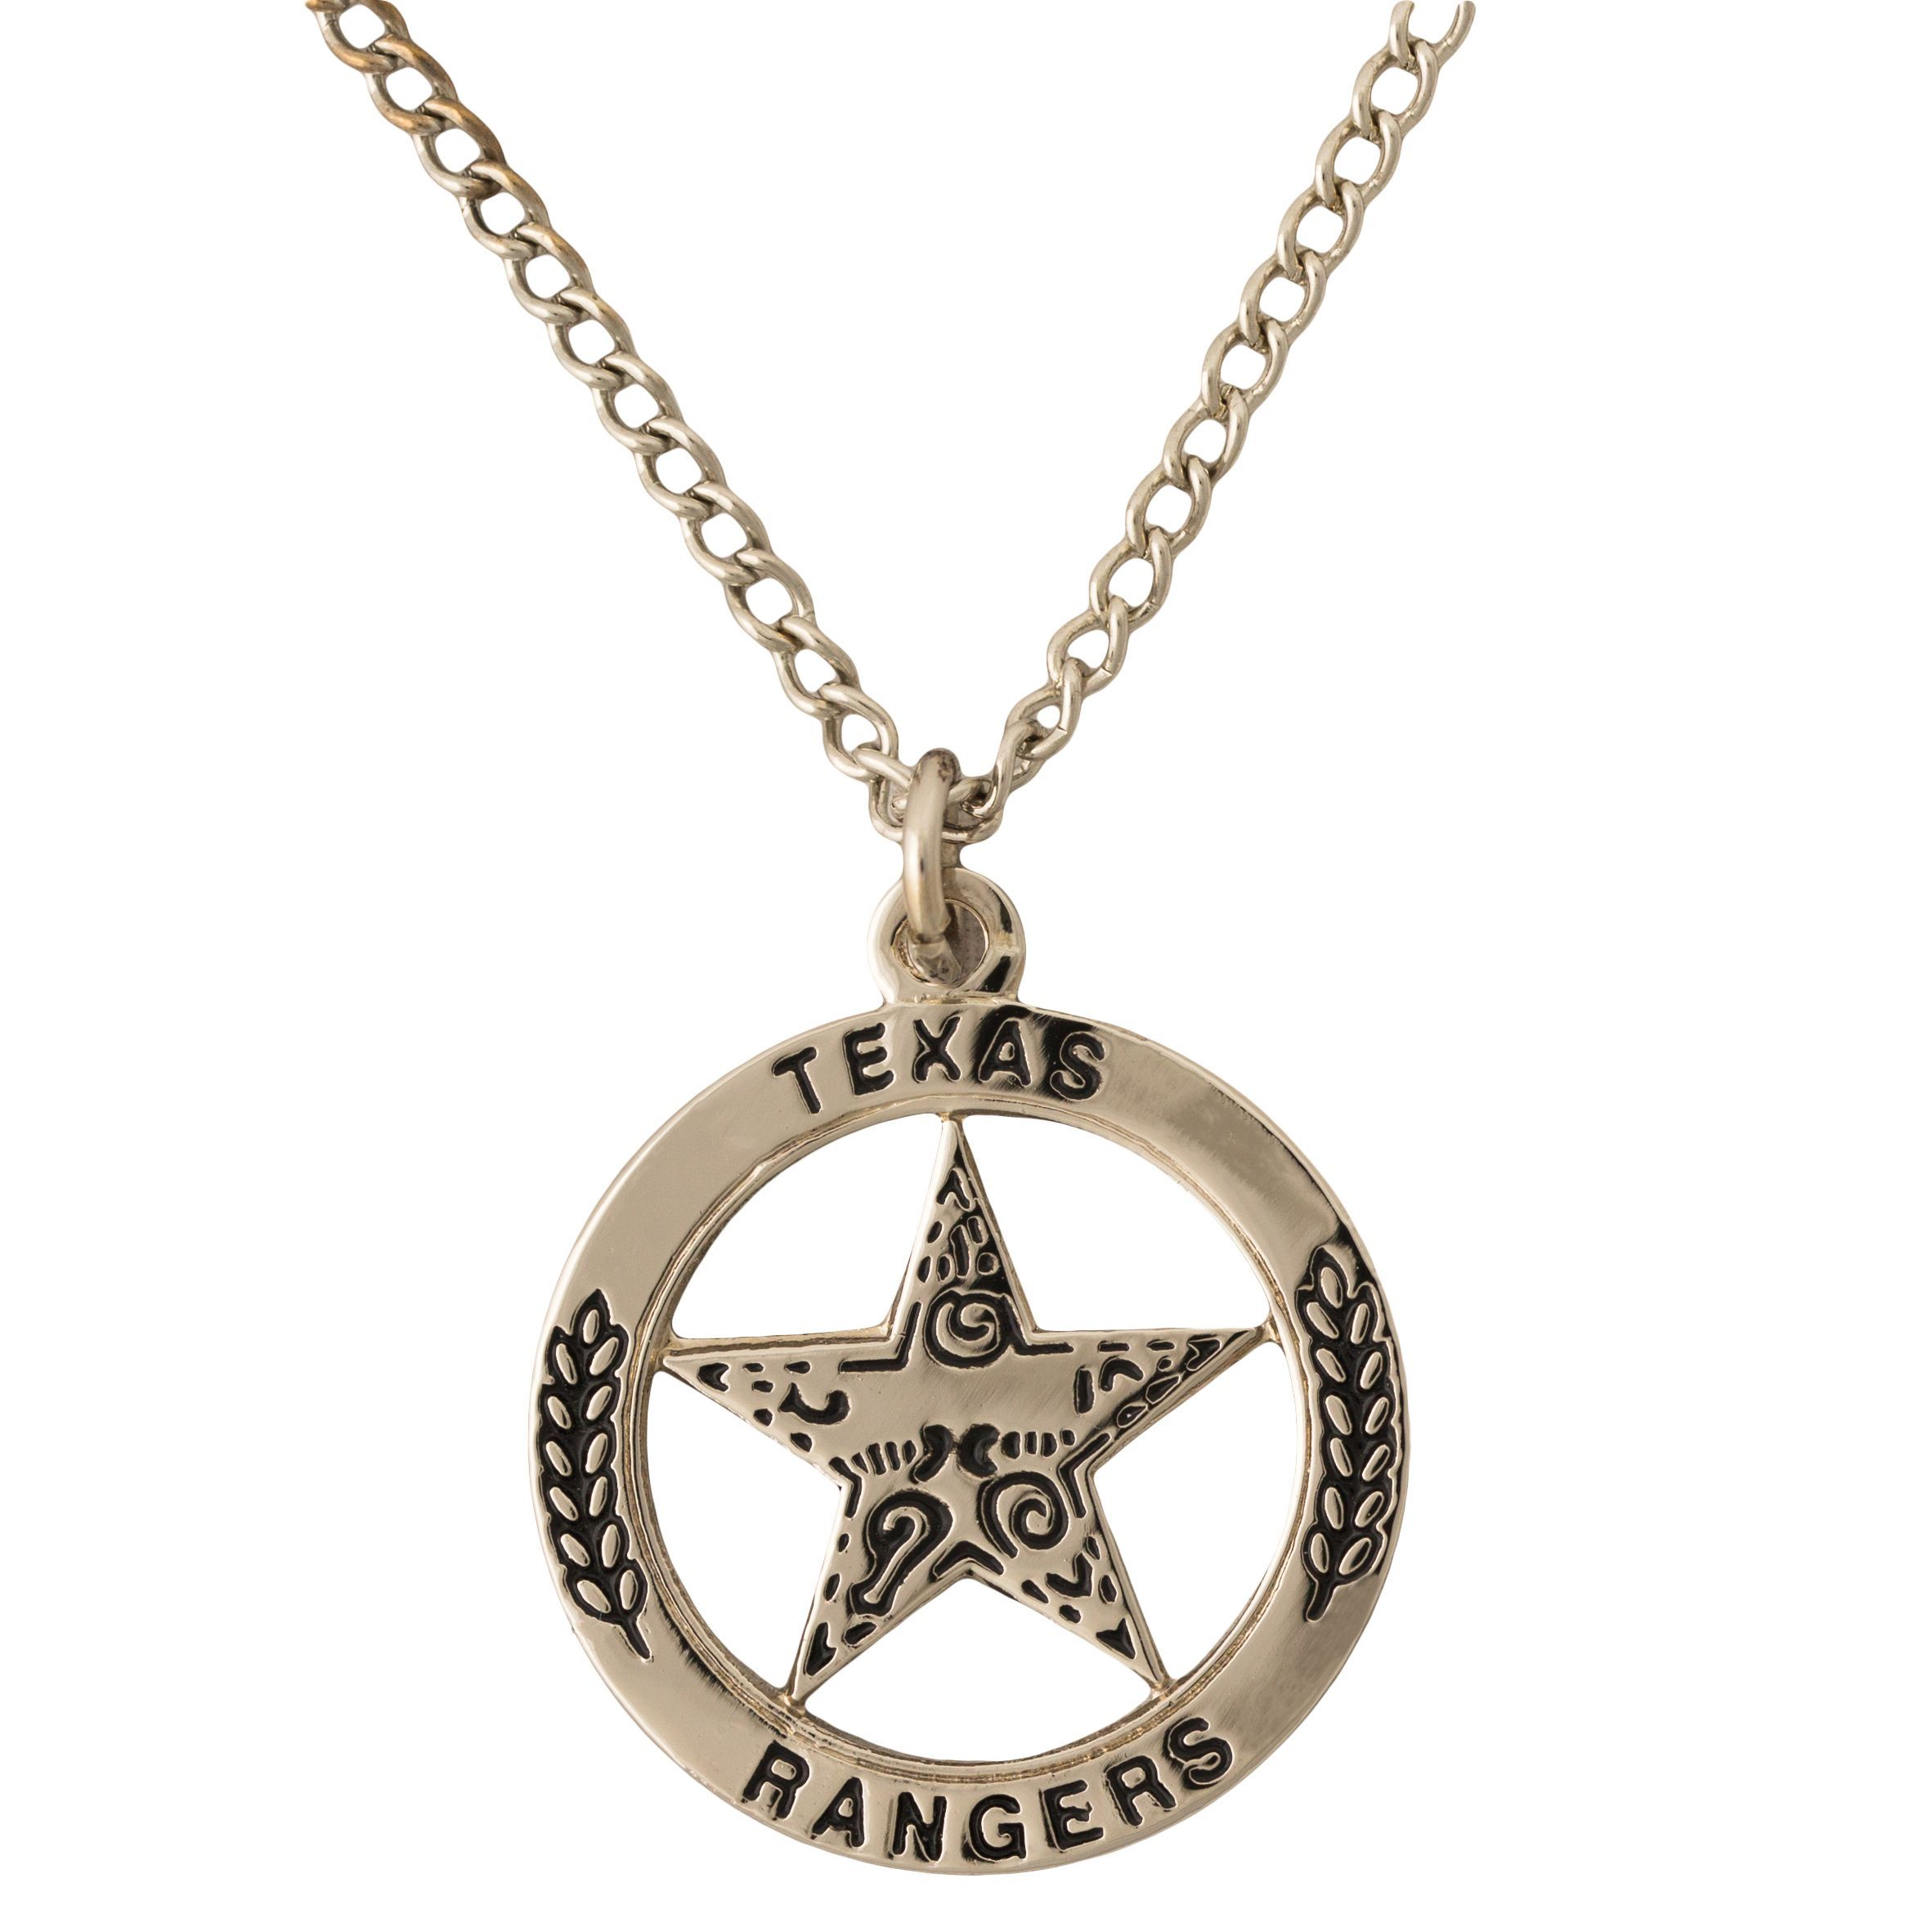 Texas ranger necklace texas capitol gift shop texas ranger necklace mozeypictures Images